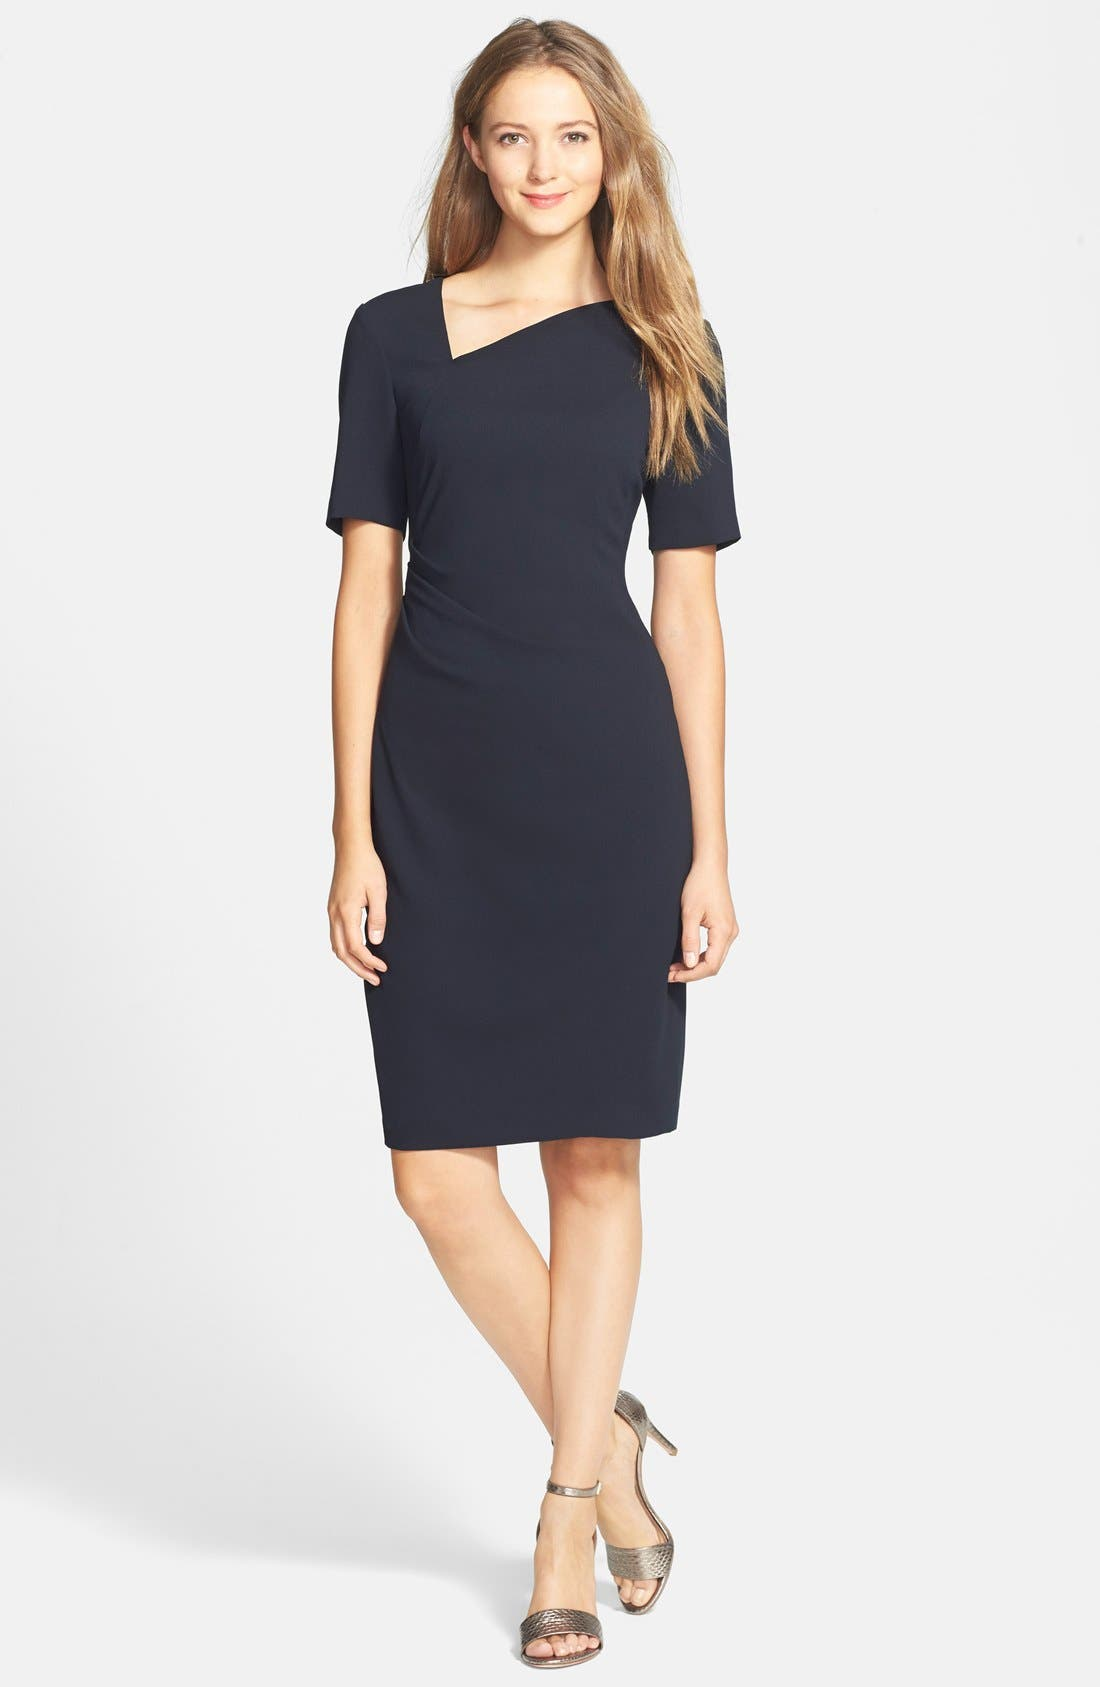 Alternate Image 1 Selected - T Tahari 'Marianna' Sheath Dress